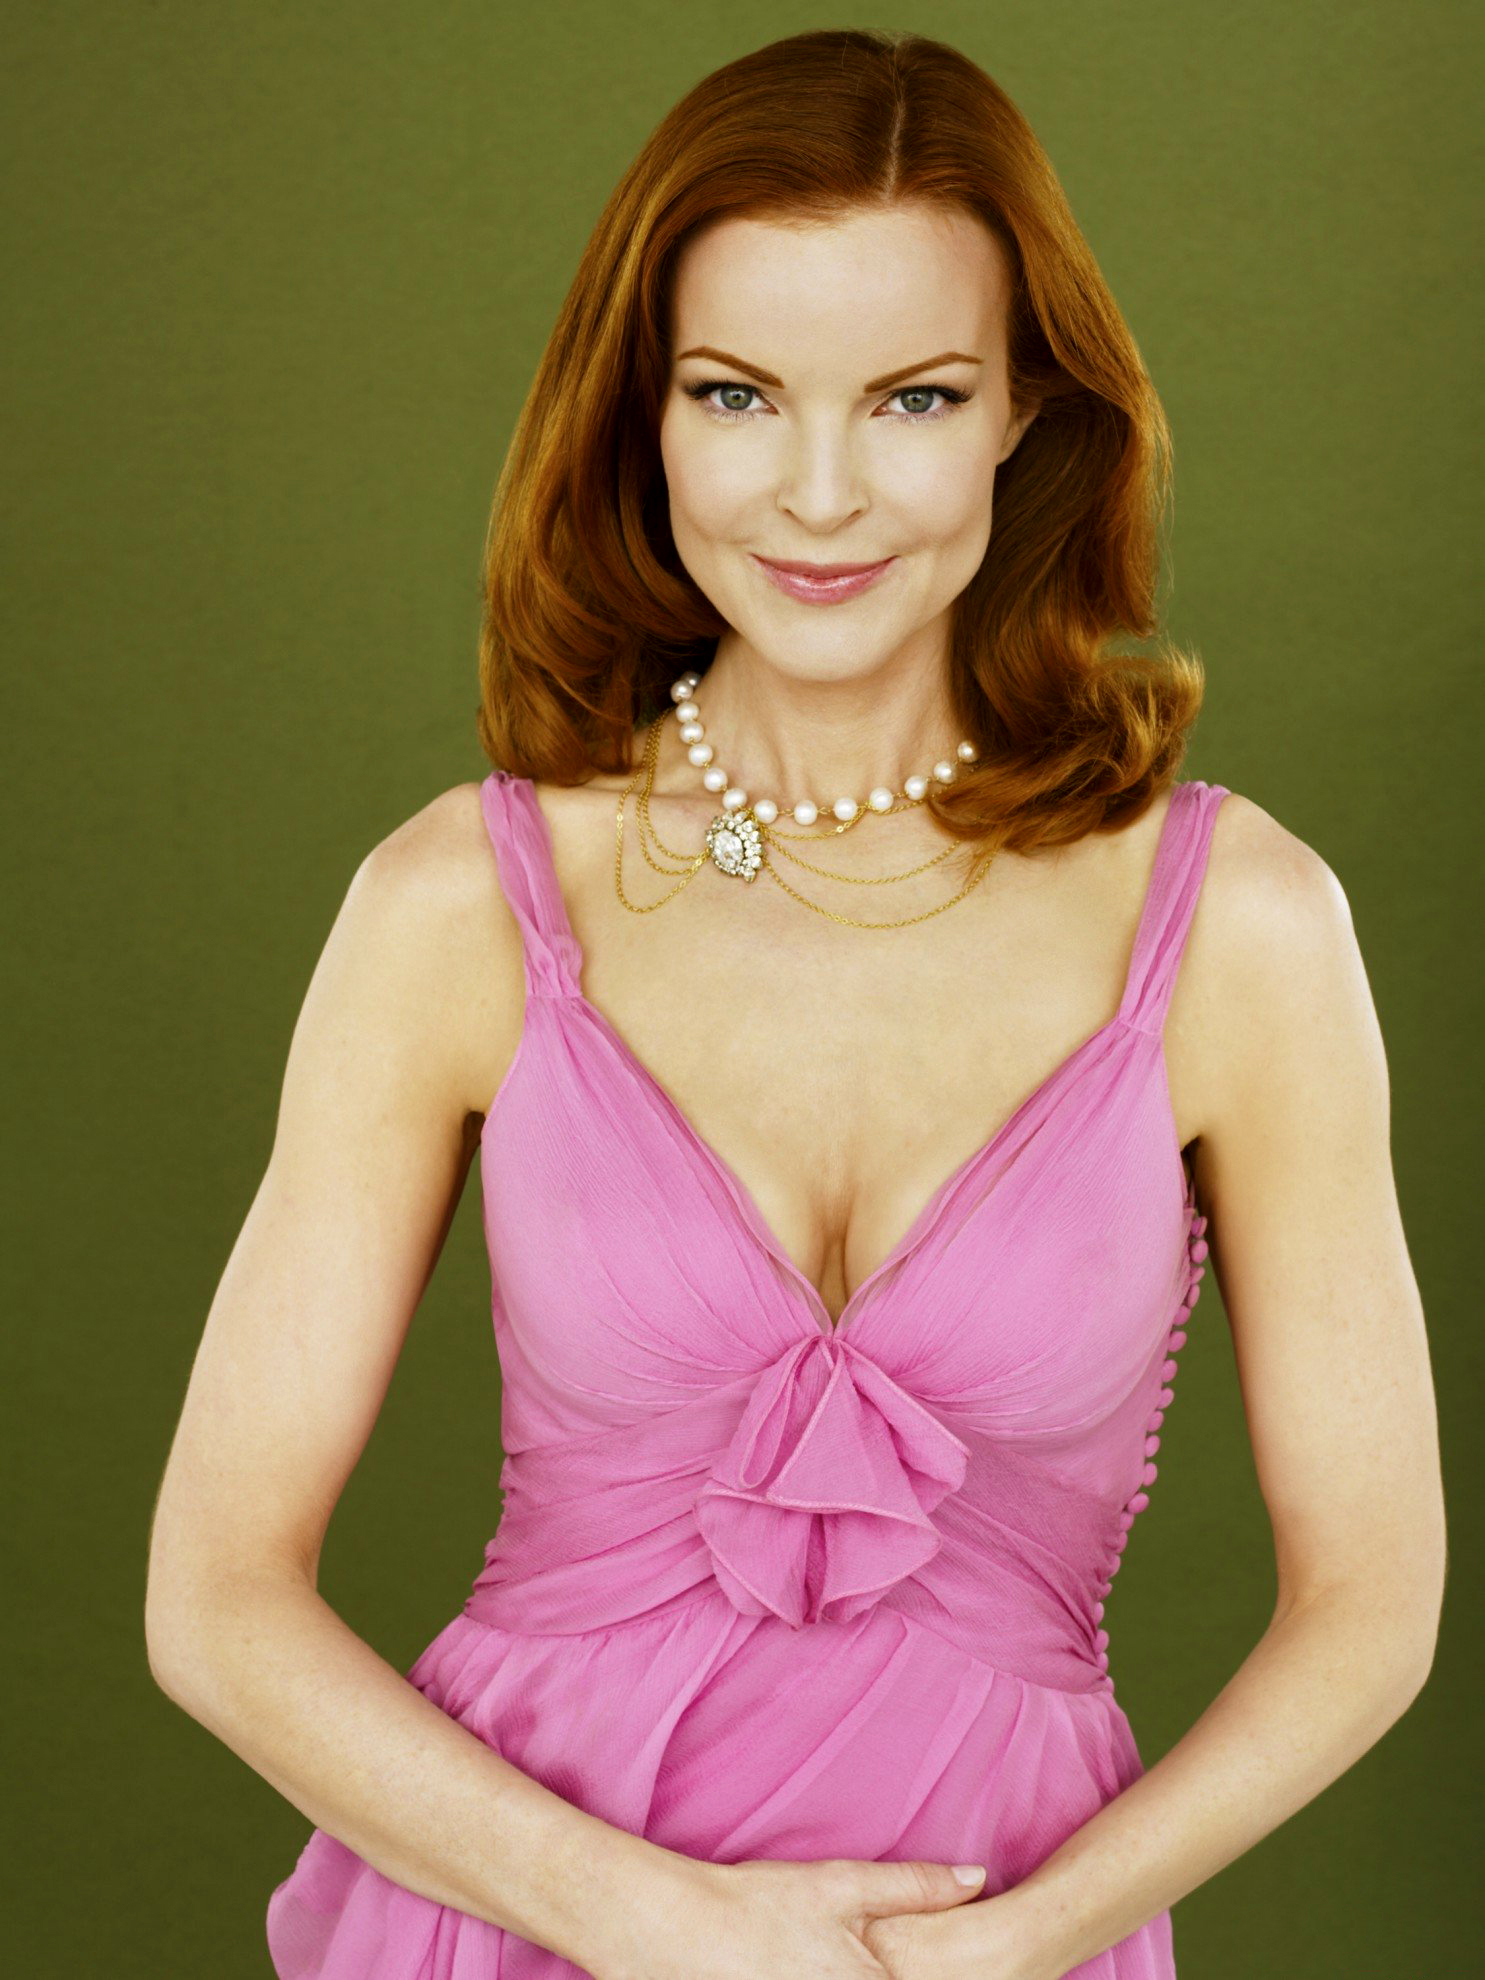 image Marcia cross desperate housewives s01e06